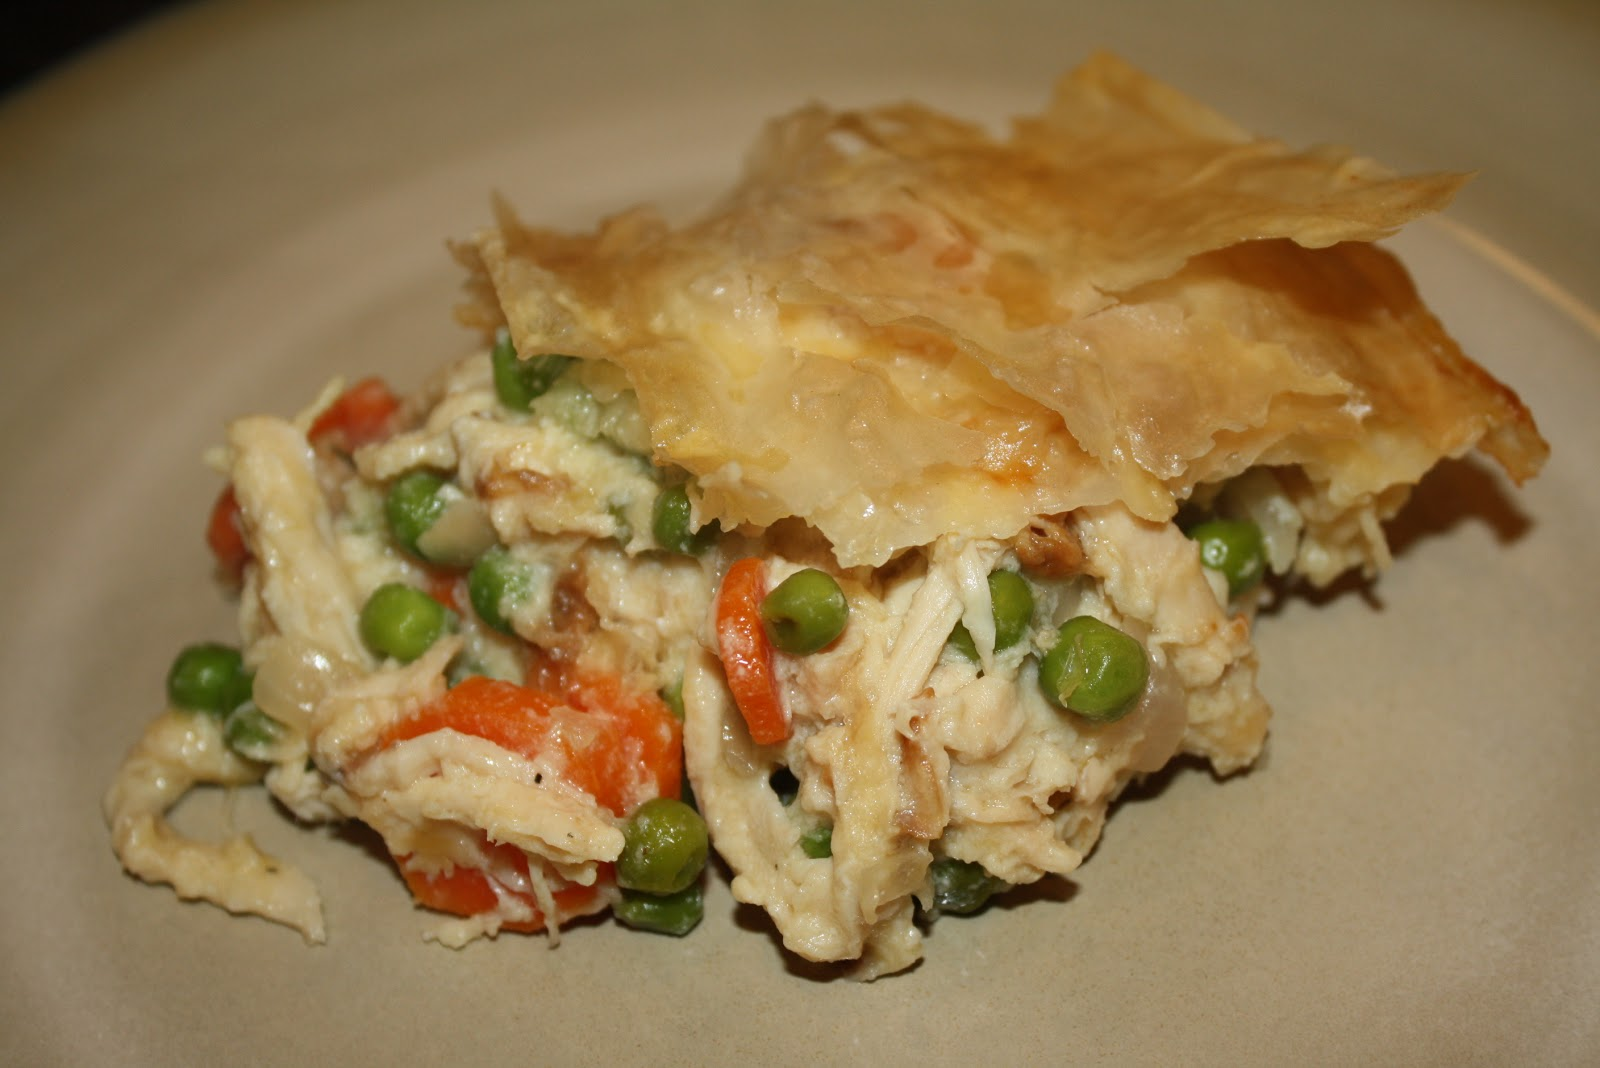 Neighbor Chick's: Lighter Chicken Pot Pie